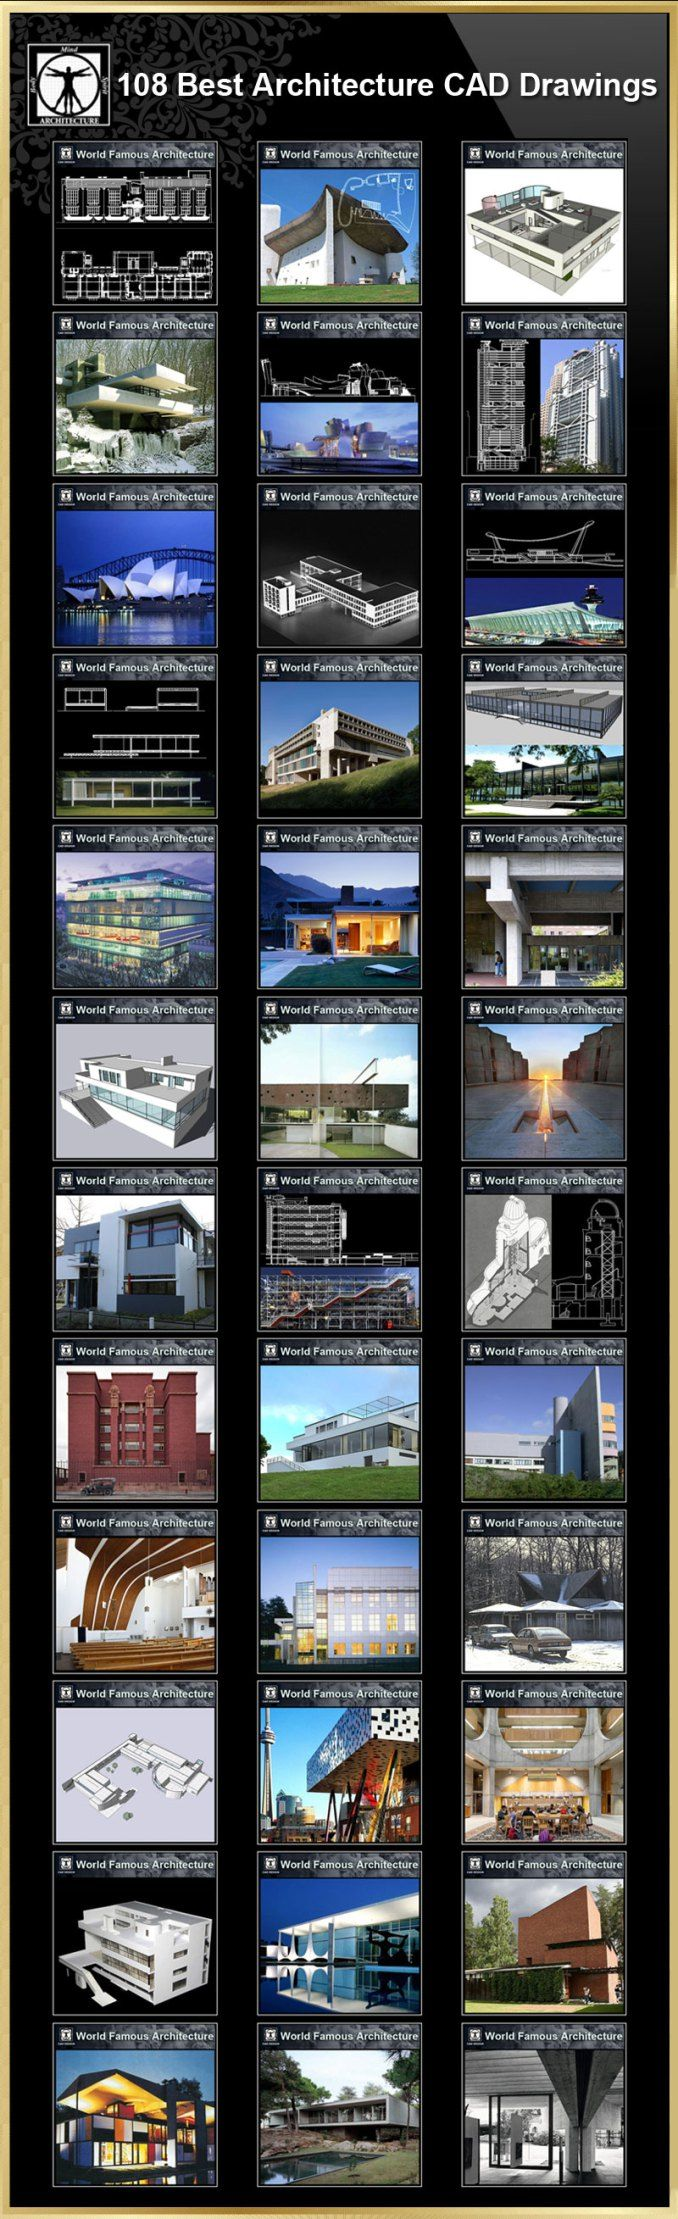 【108 Best Architecture CAD Drawings】(Best Collections!!) | Free Cad Blocks & Drawings Download Center